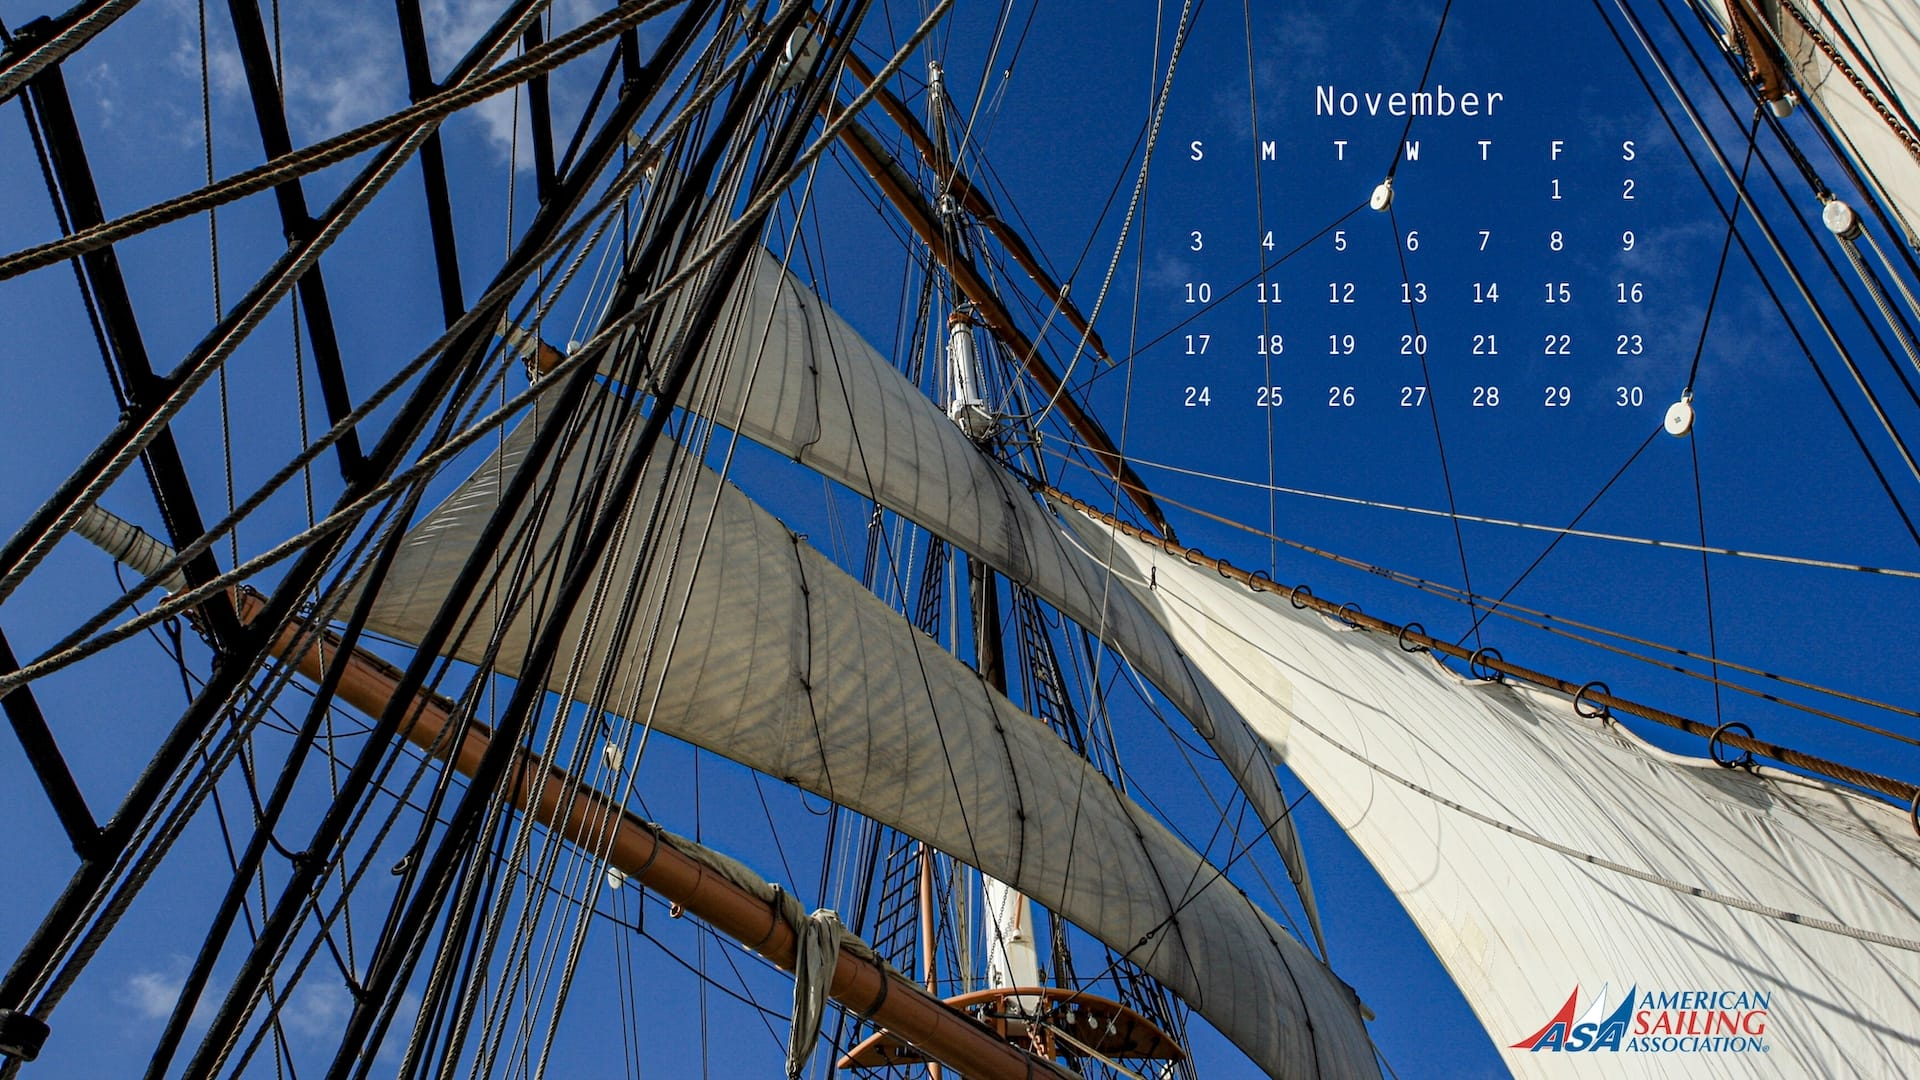 ASA Desktop Wallpaper Sailing Calendar - November 2019